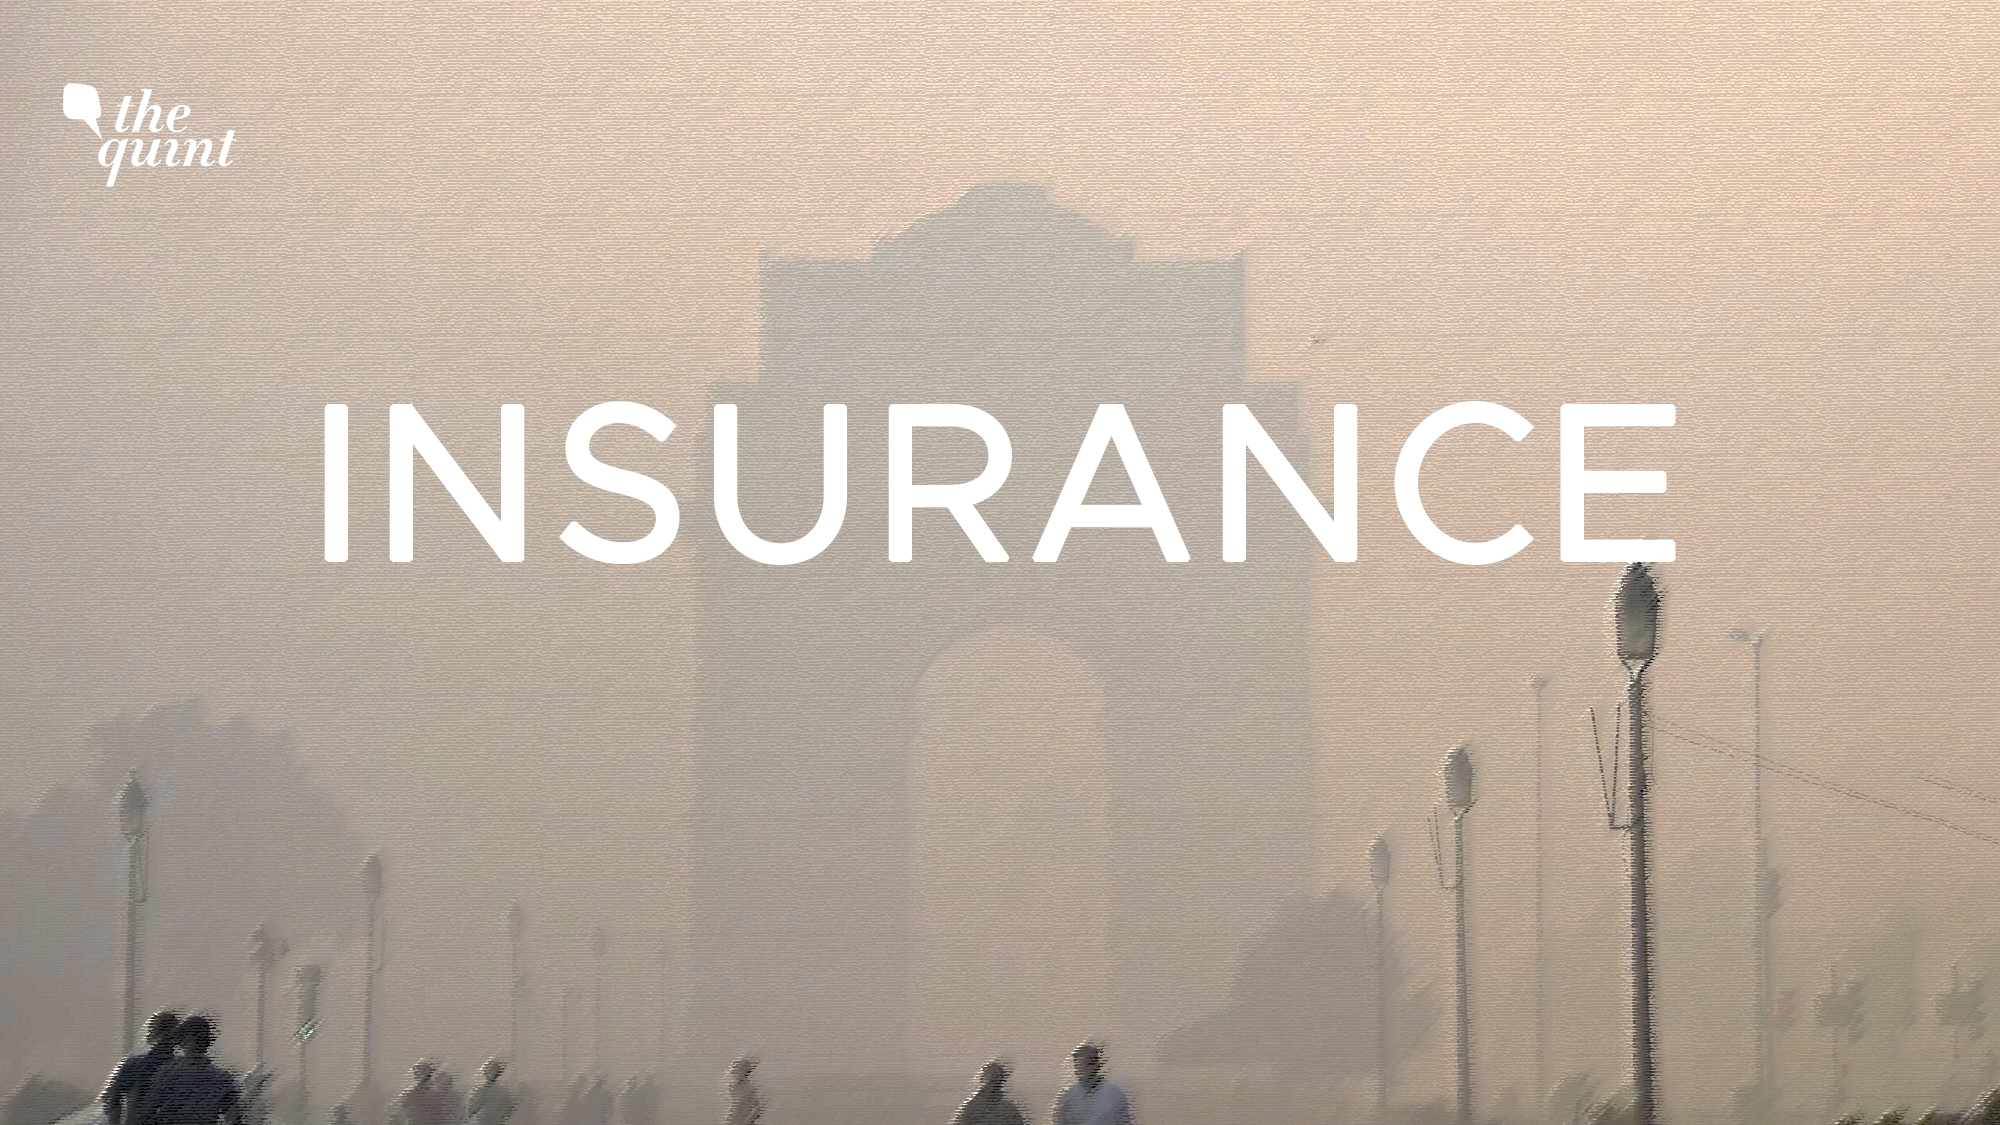 Indian Parliament May Ignore Pollution, Insurance Companies Can't